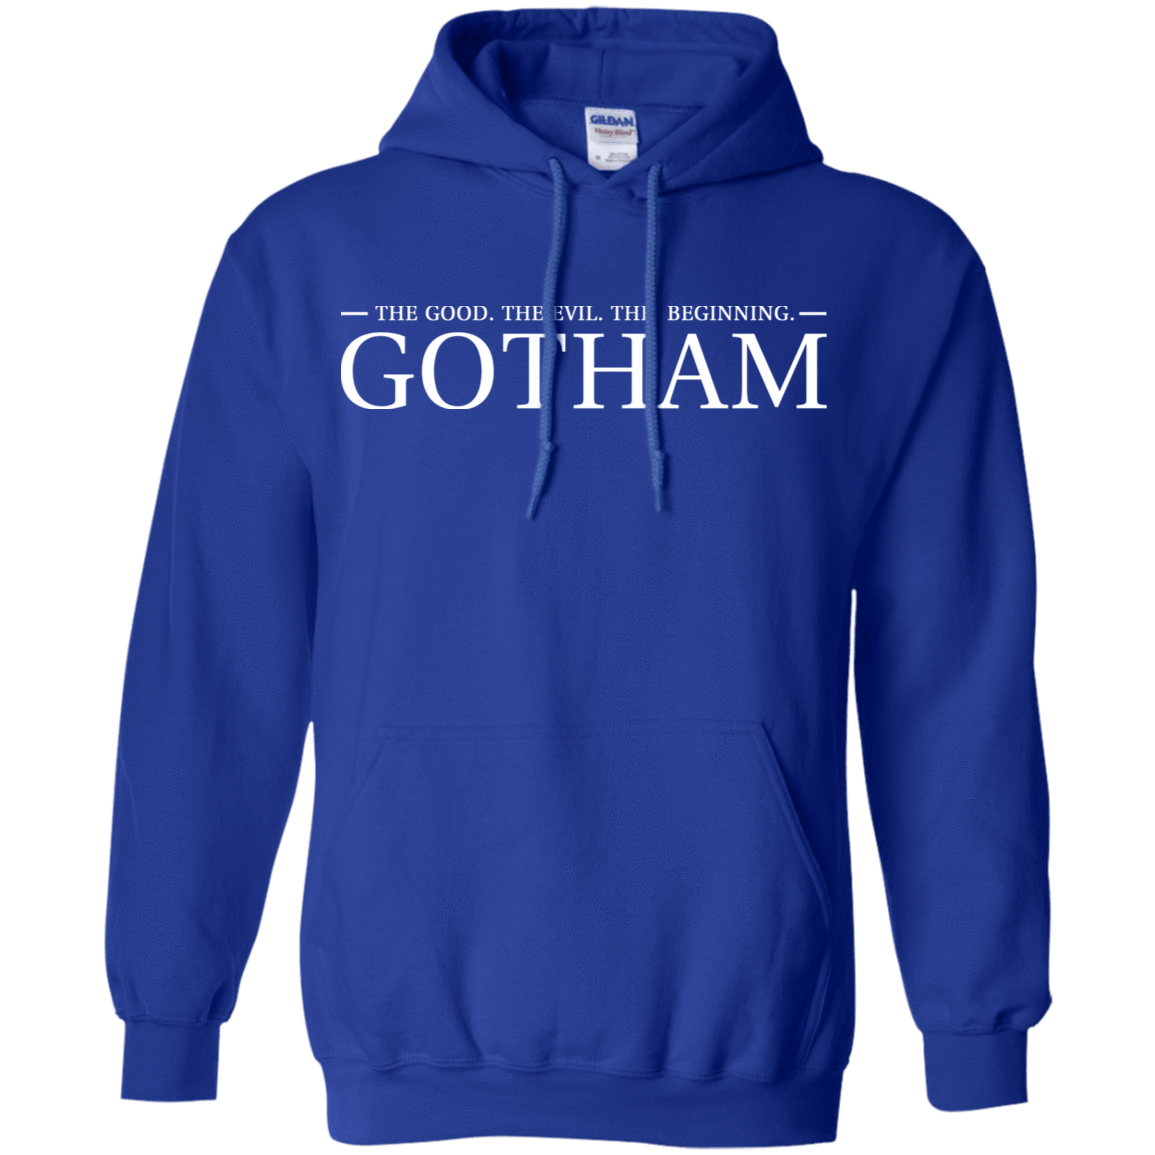 The Good. The Evil. The Beginning. Gotham 541-4765-74005252-23175 - Tee Ript